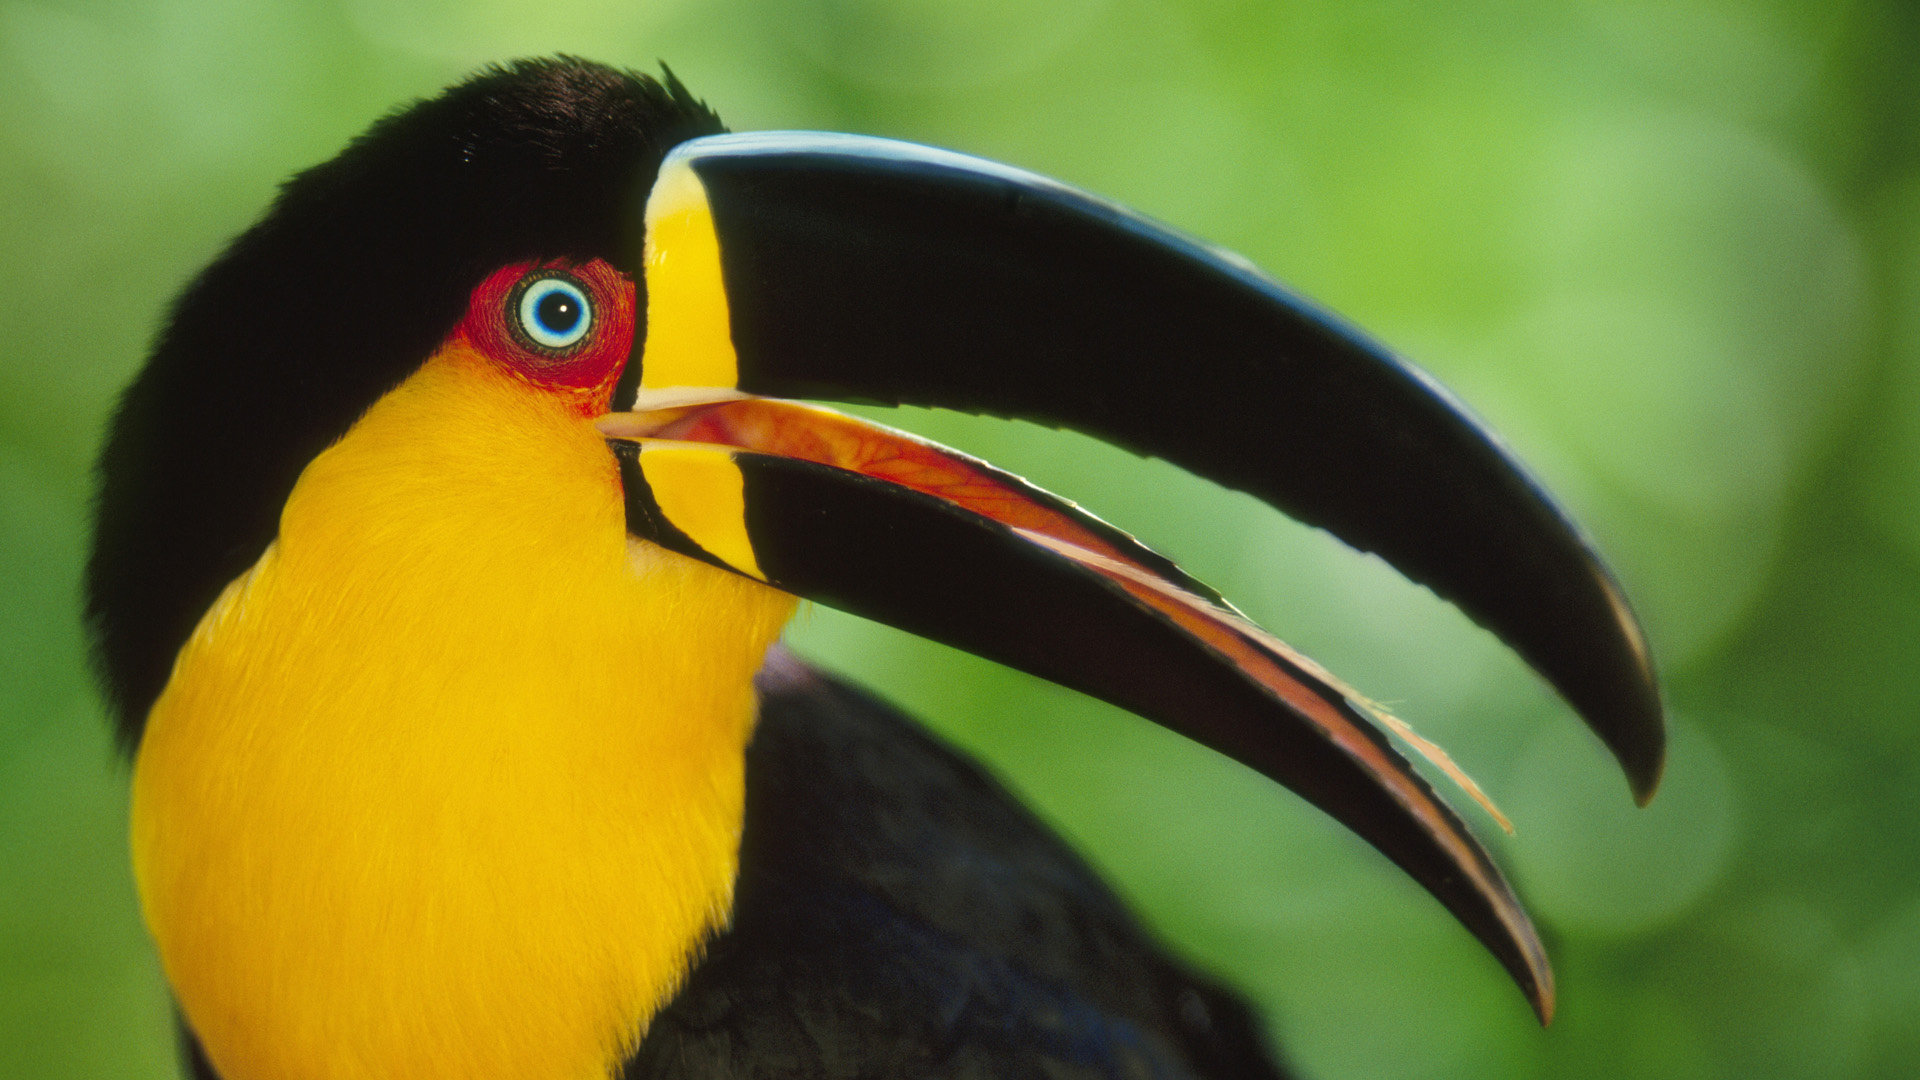 Download full hd 1080p Toucan desktop wallpaper ID:57297 for free